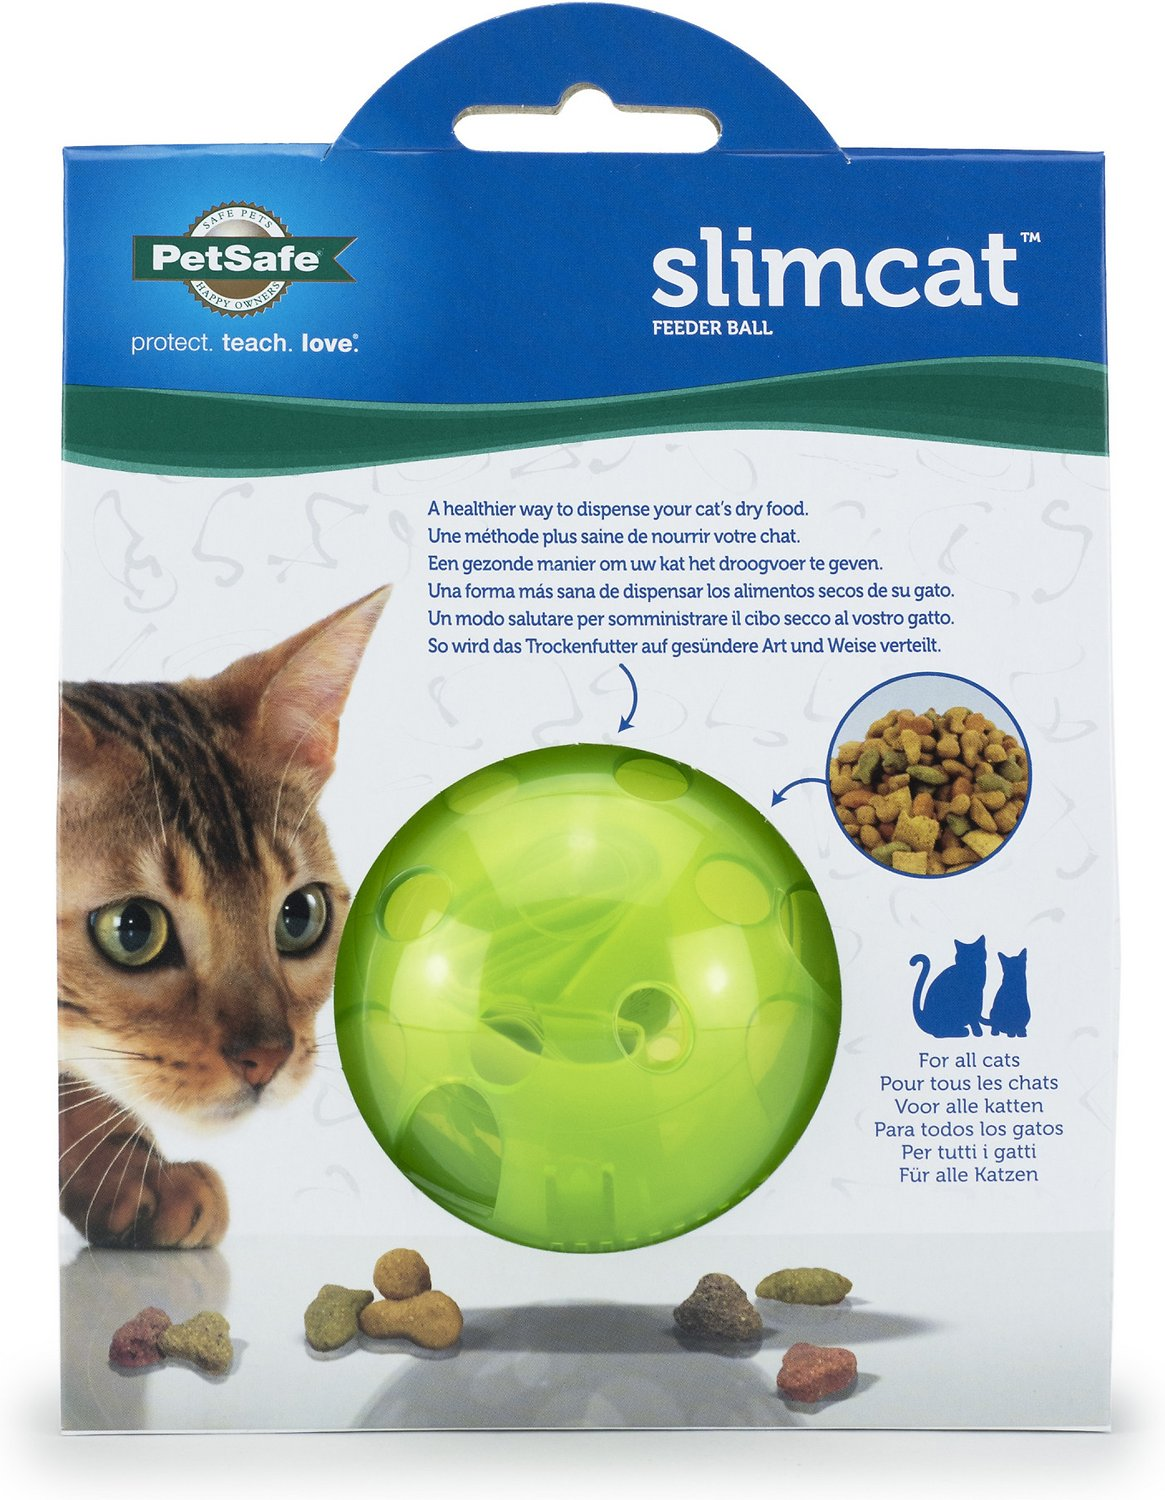 petsafe 5 meal feeder instructions